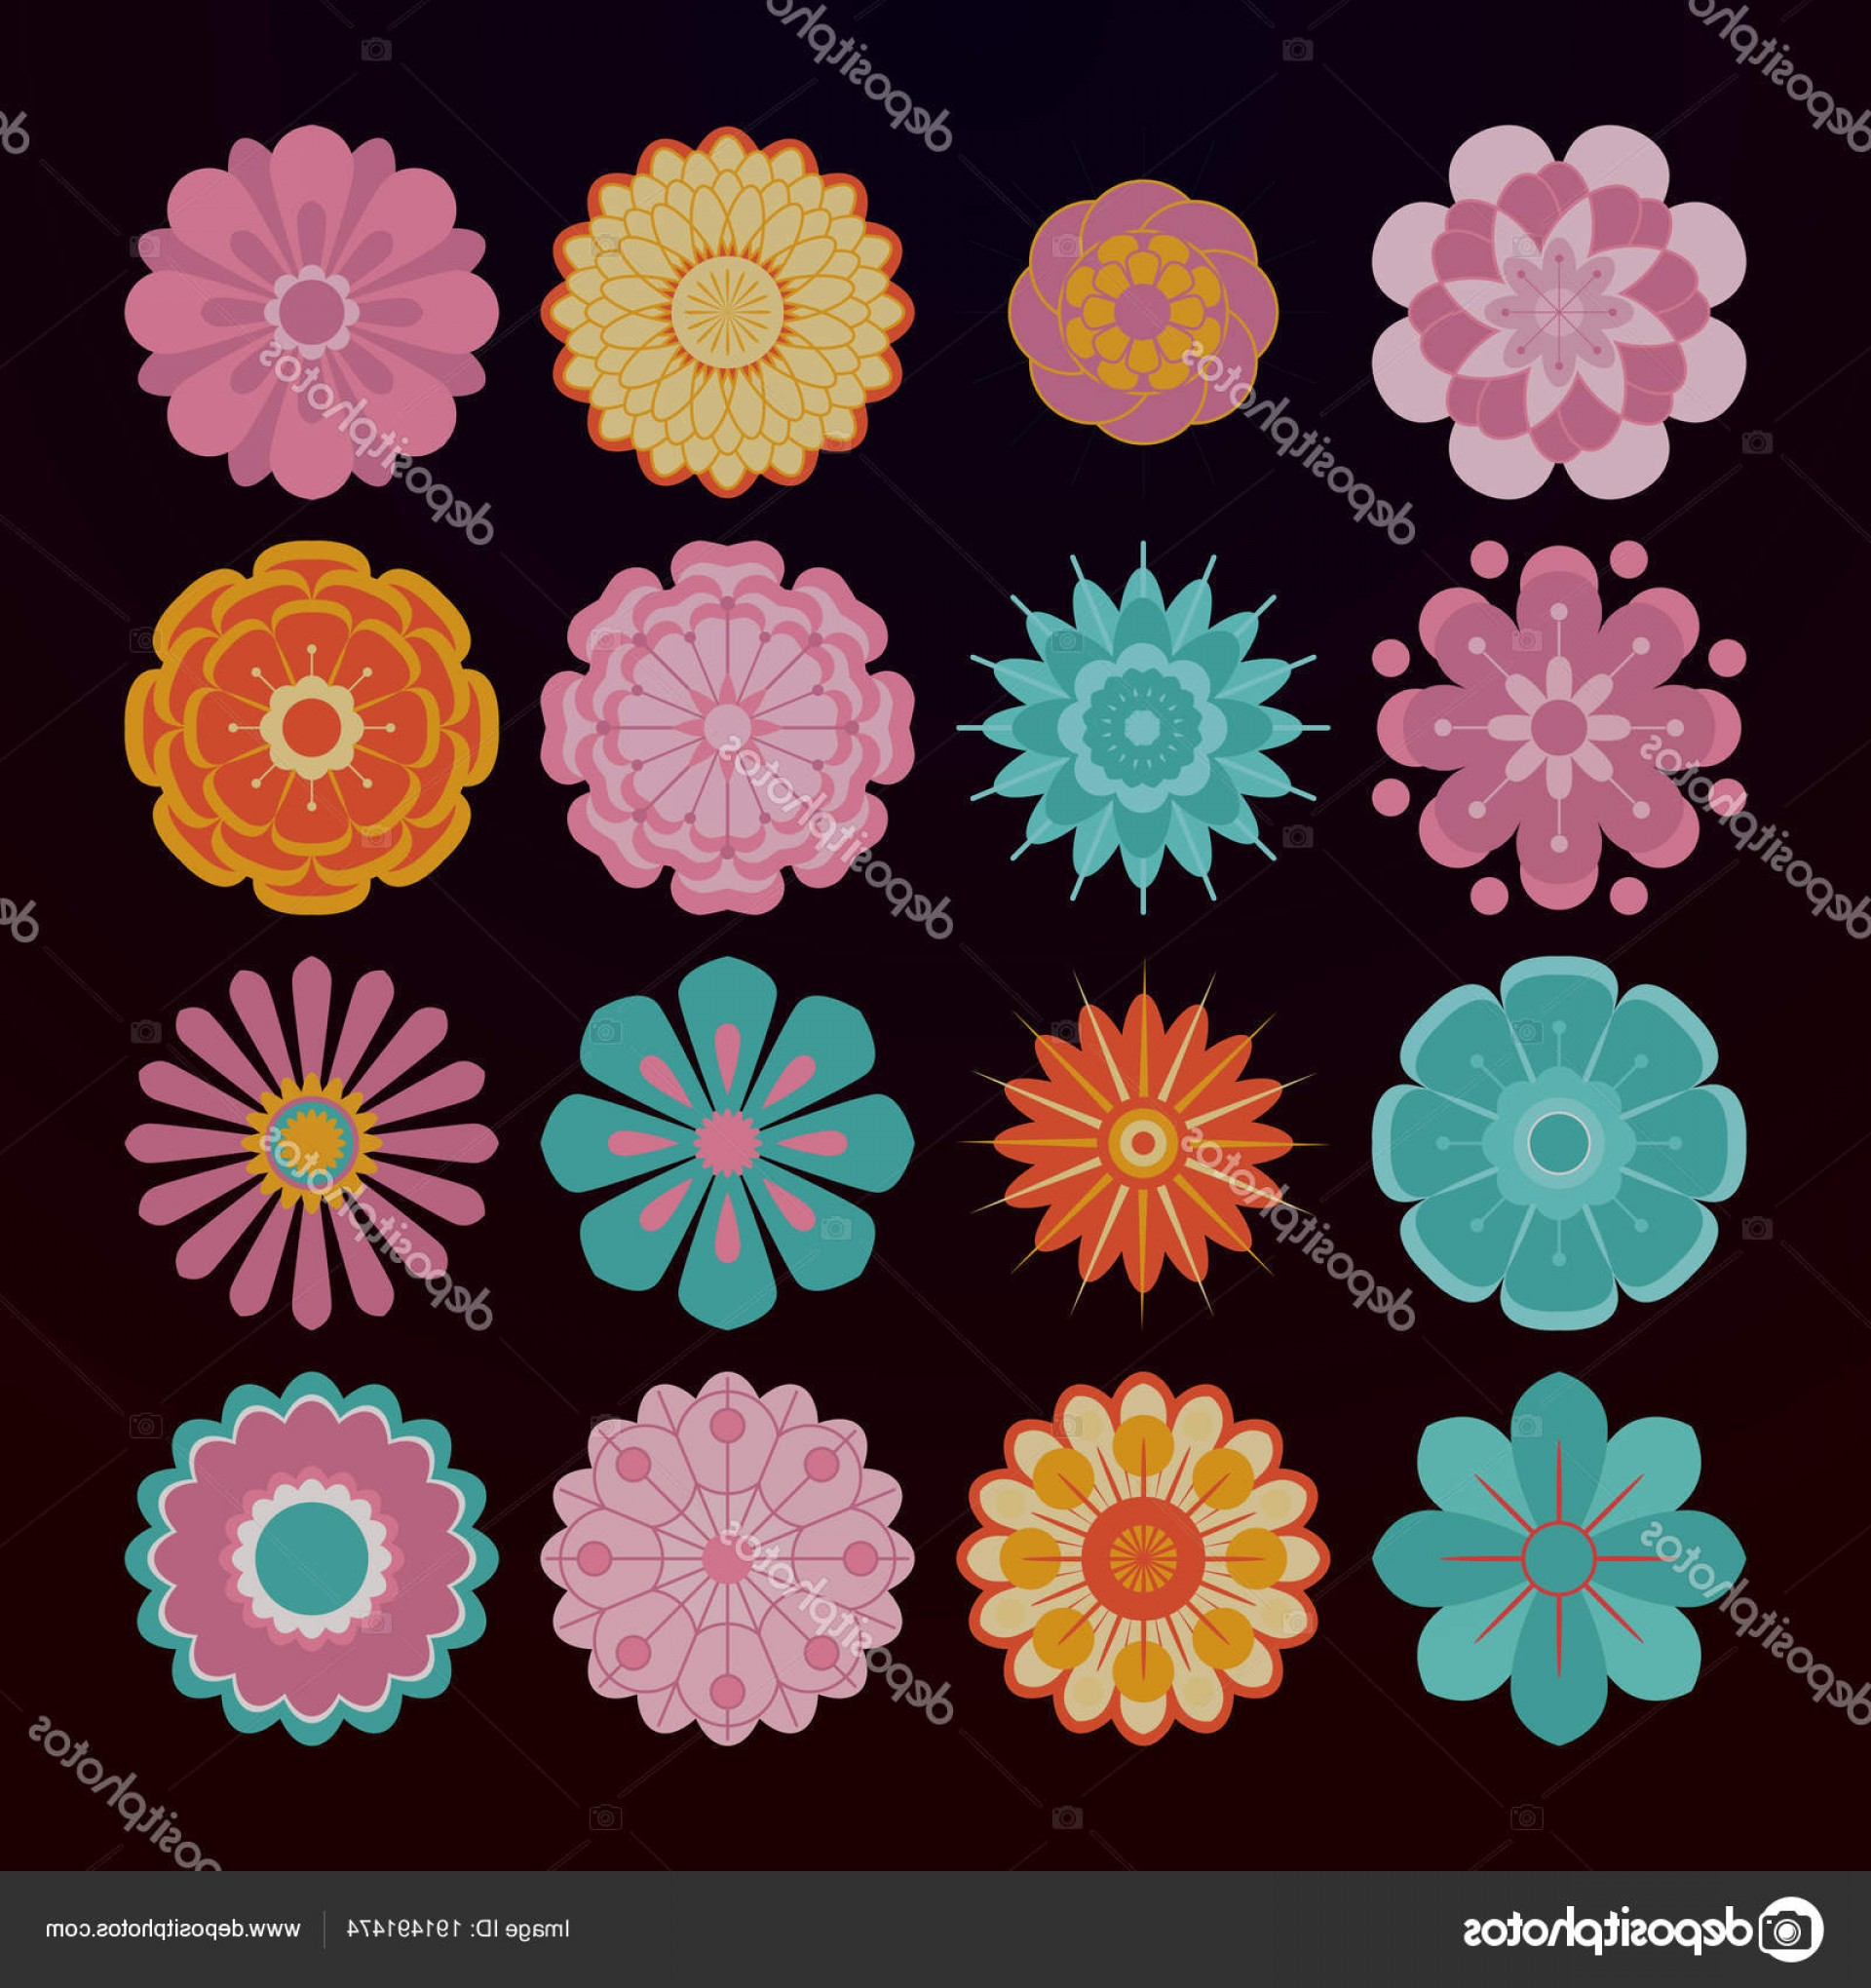 Cute Design Elements Vector Set: Stock Illustration Abstract Floral Design Elements Vector